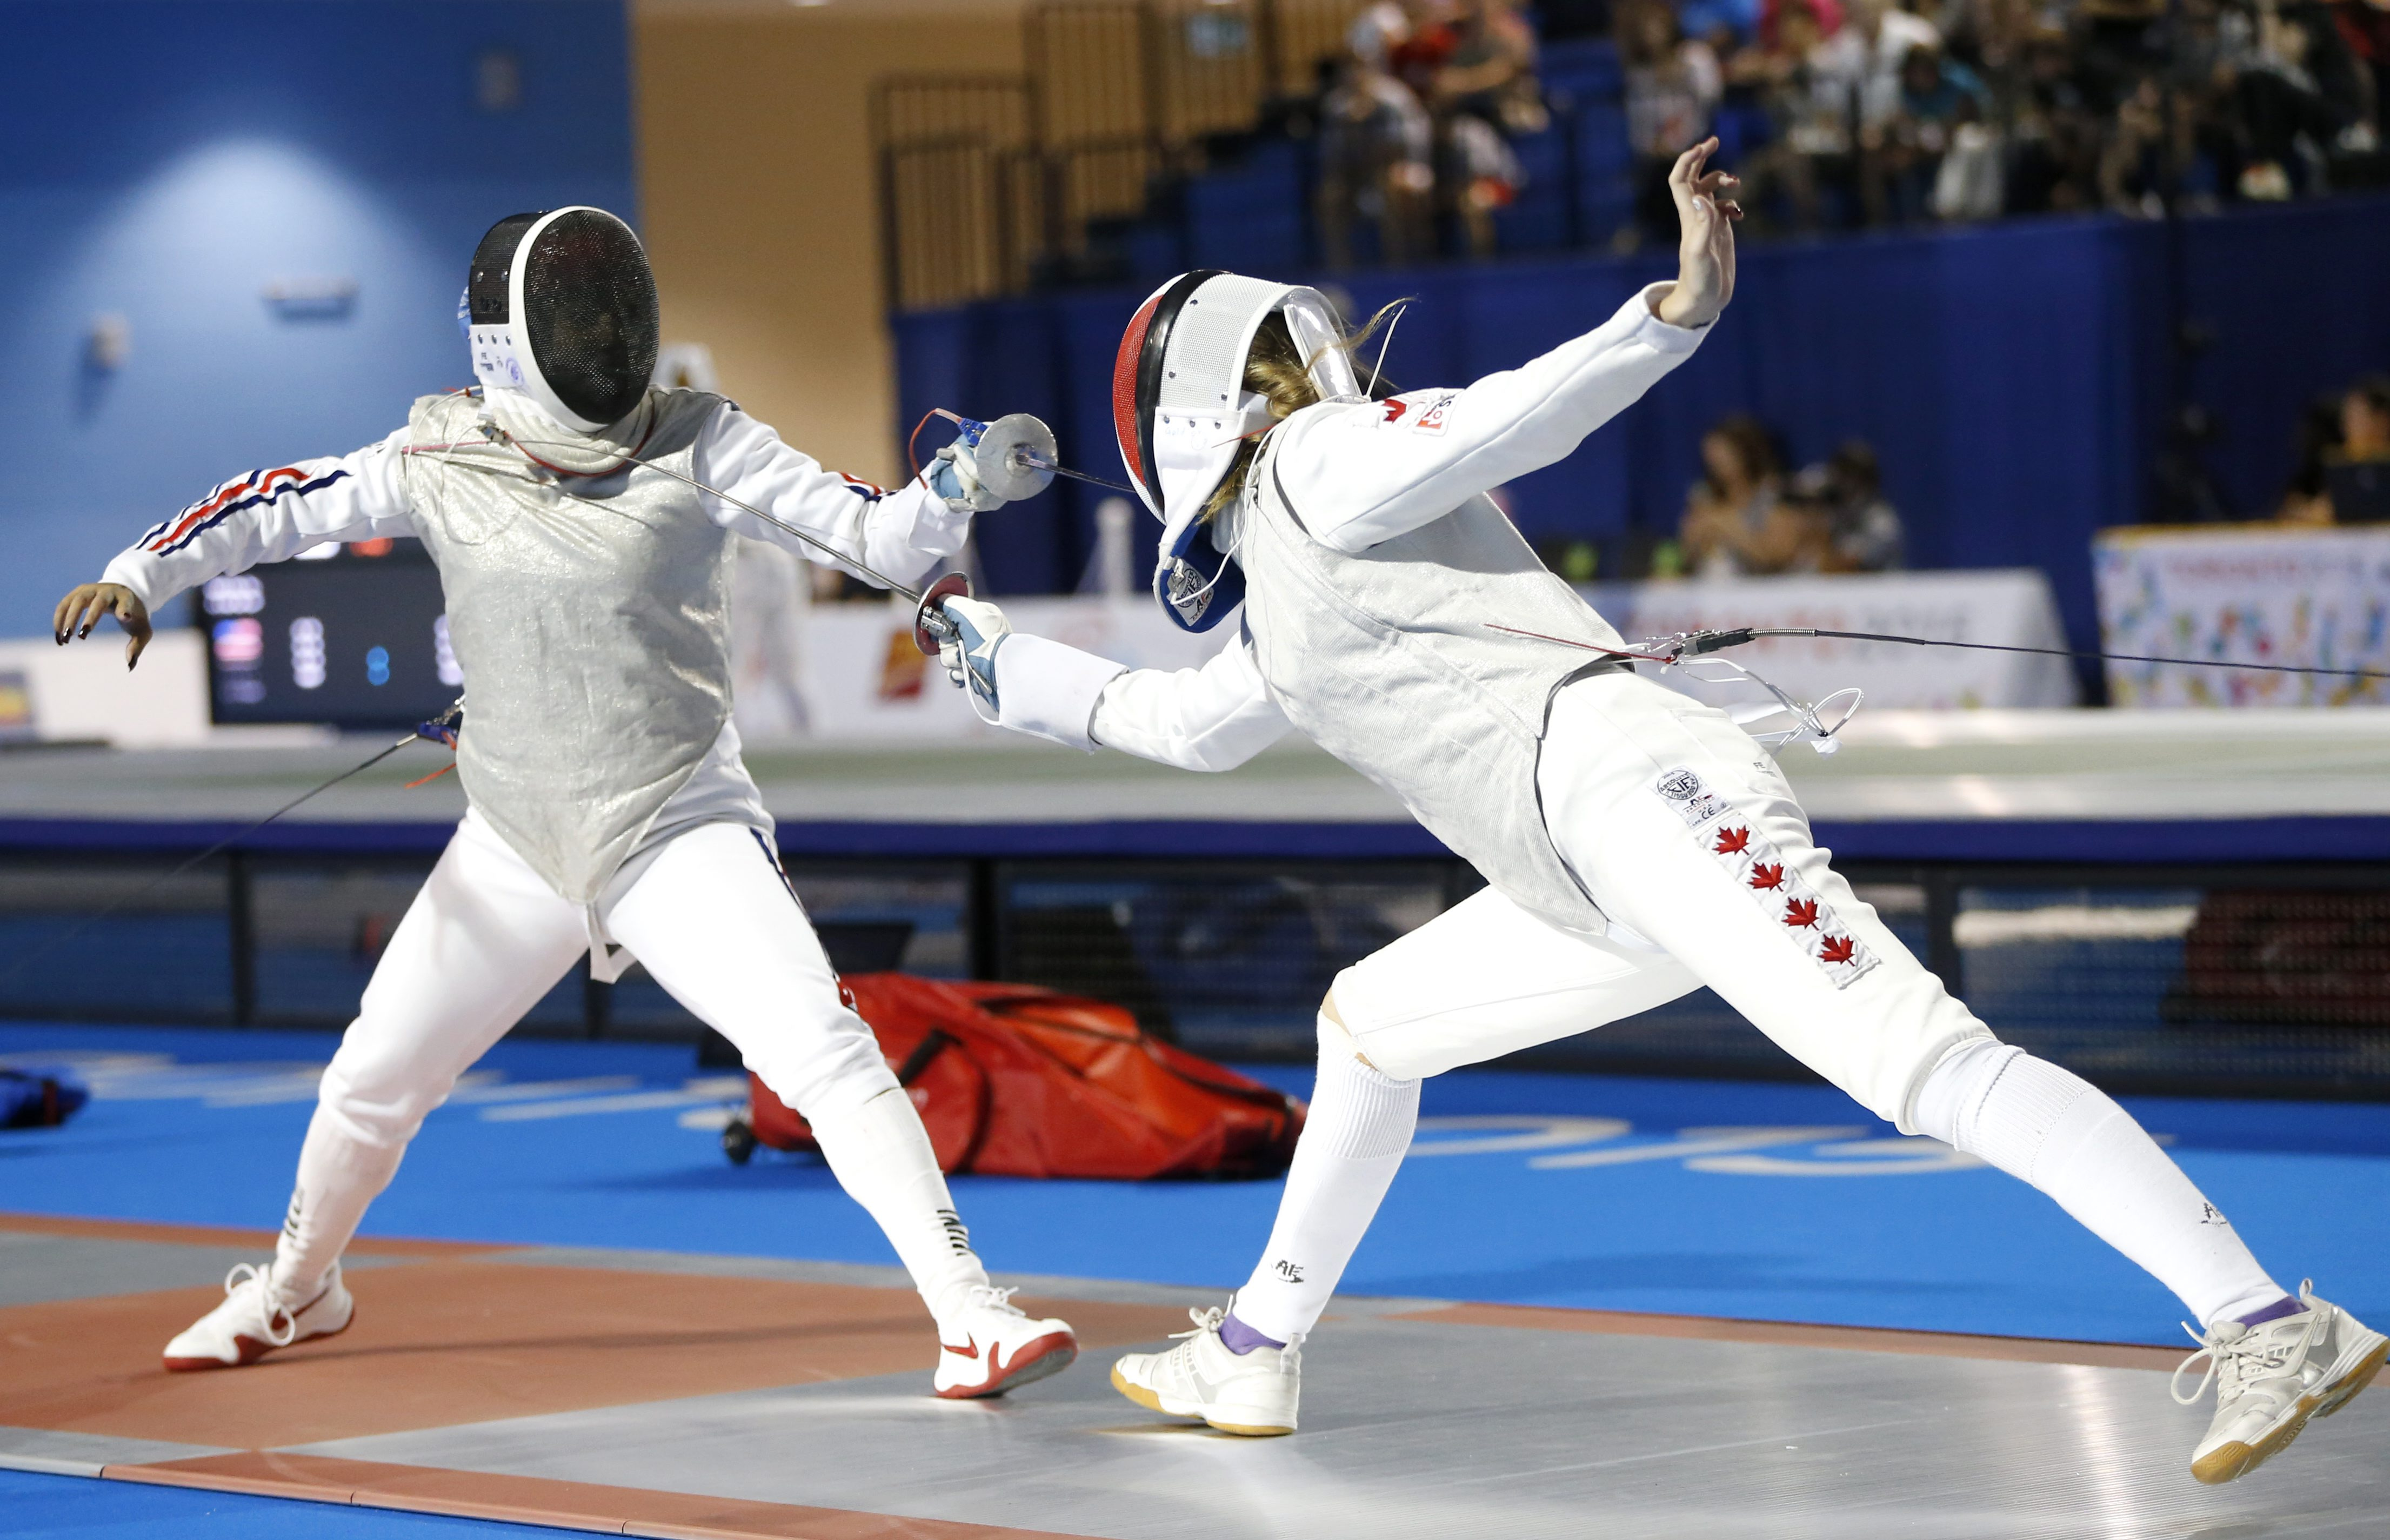 Cuba's Elizabeth Hidalgo, left, competes against Canada's Alanna Goldie during their women's foil individual quarterfinal match at the Pan Am Games, Wednesday, July 22, 2015, in Toronto. (AP Photo/Julio Cortez)